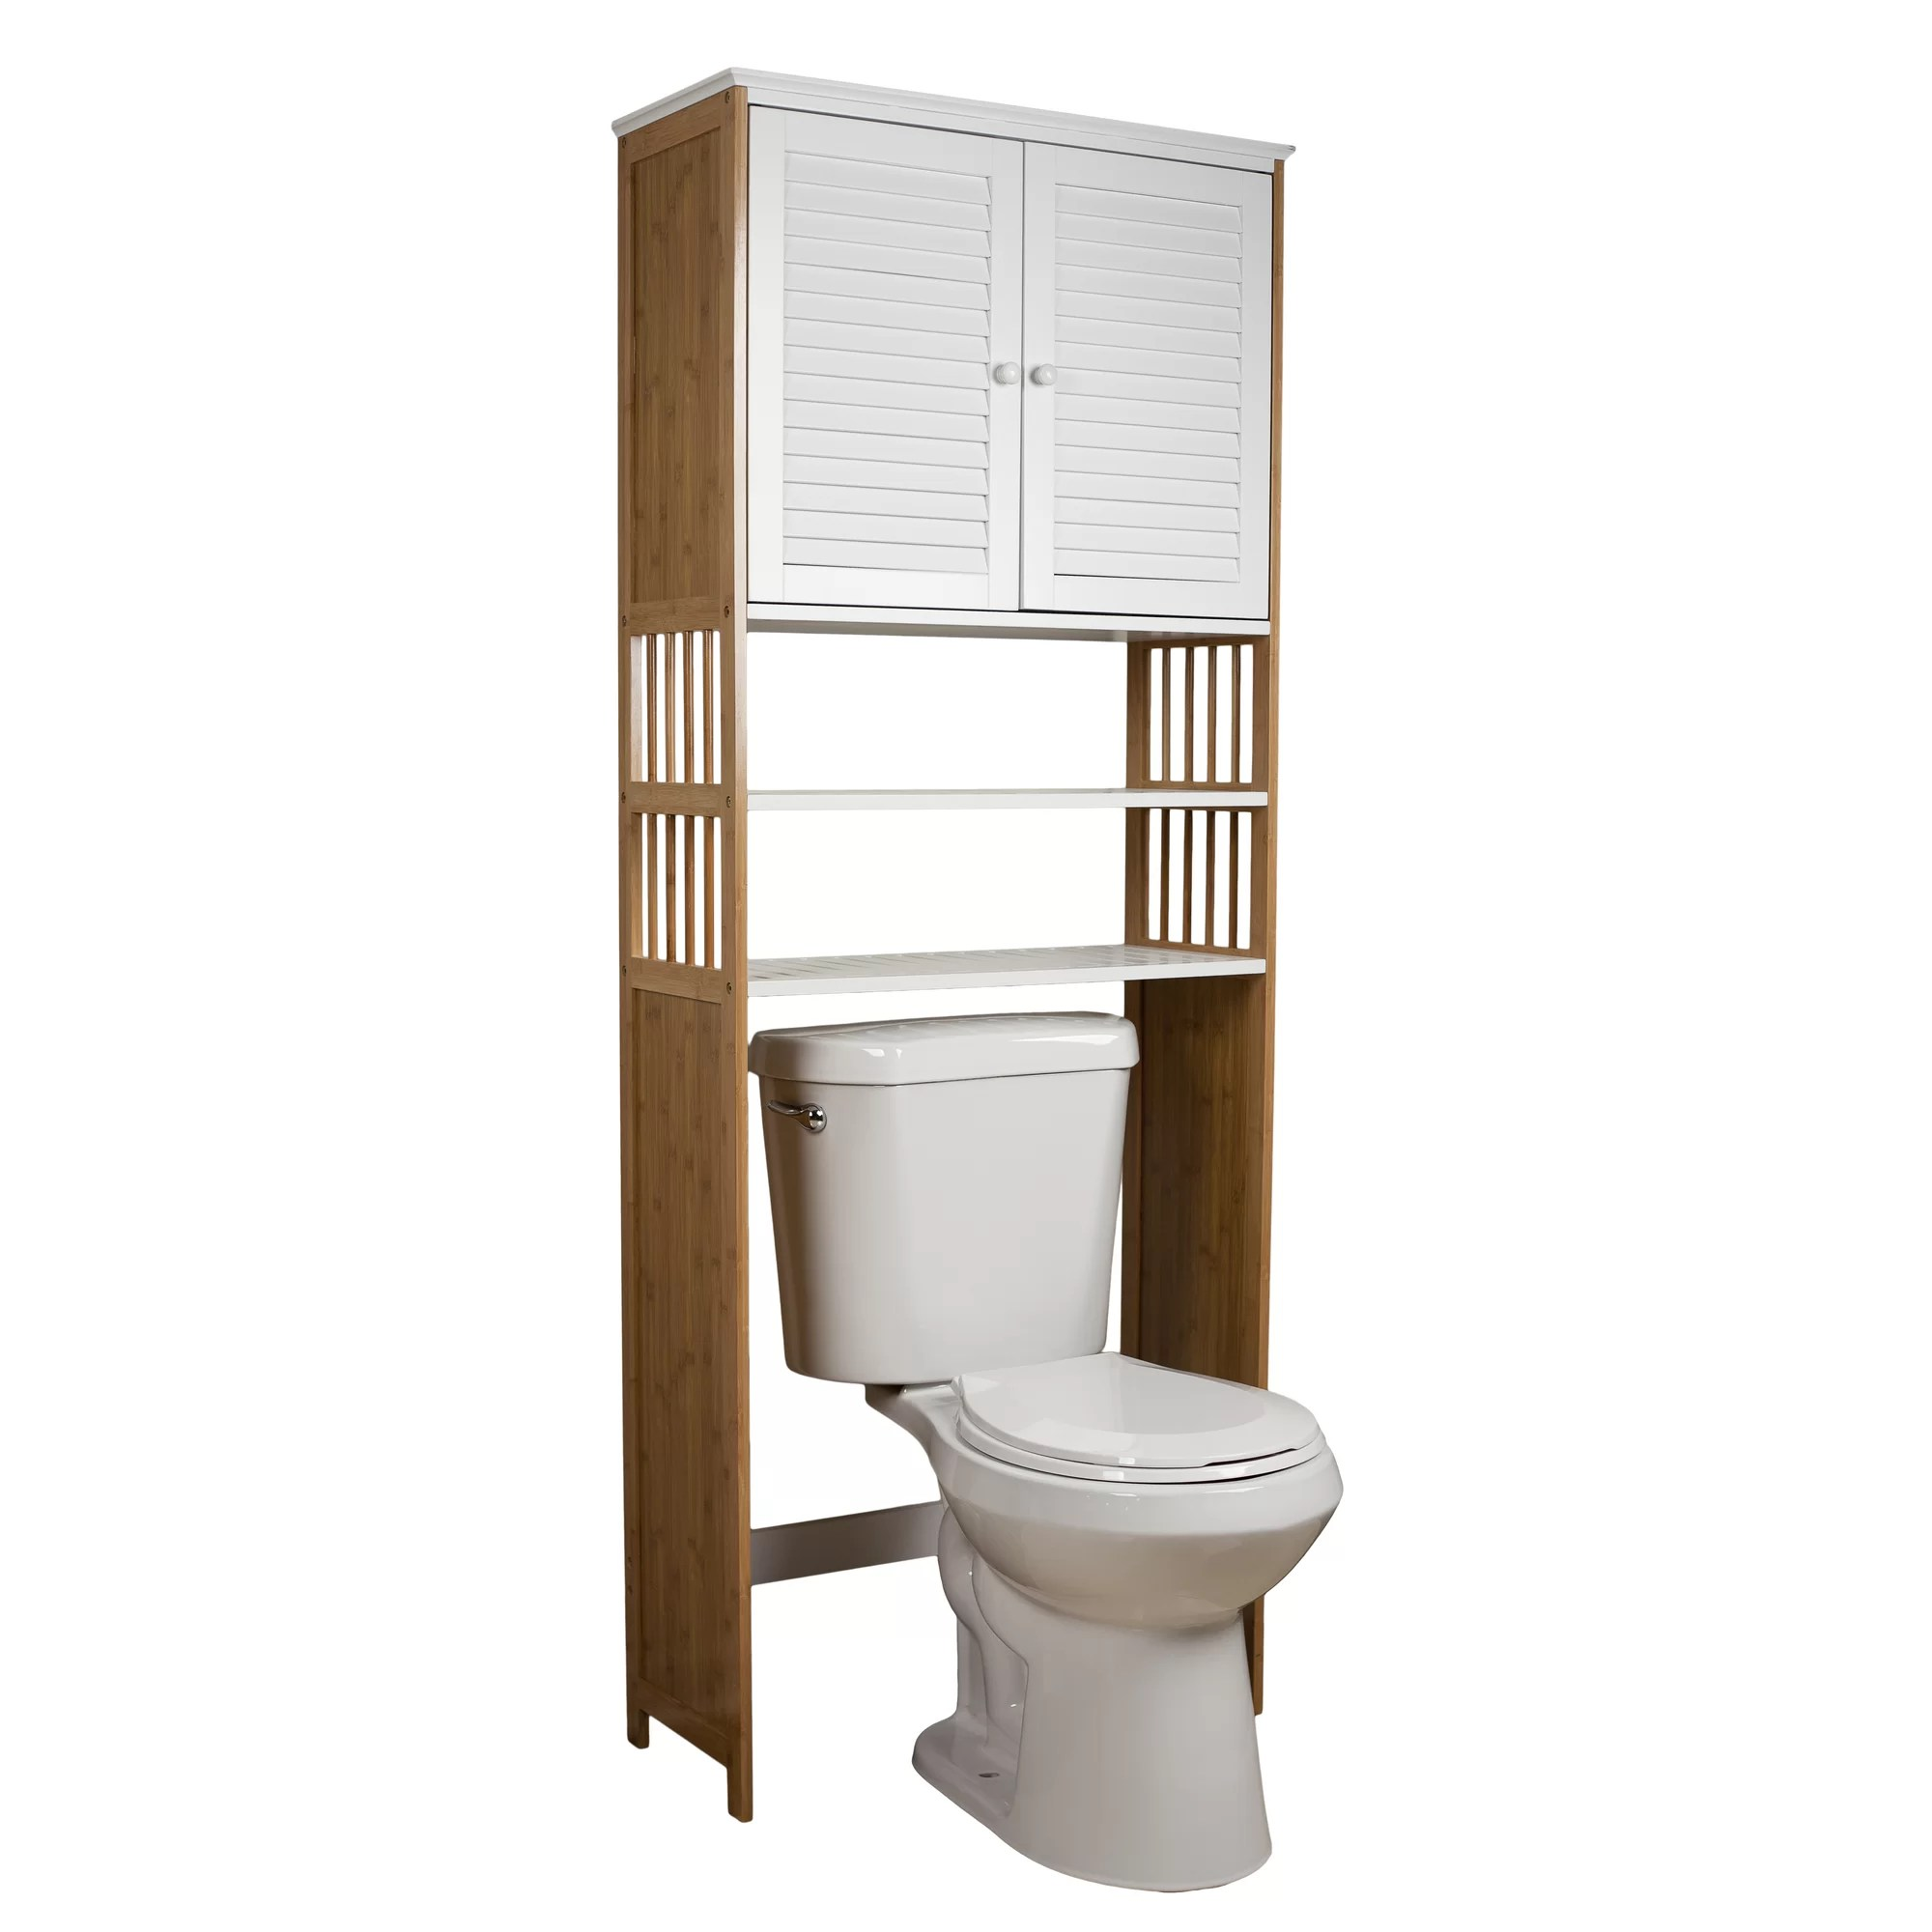 "Danya B Bamboo Bathroom 27"" x 71"" Over the Toilet Cabinet"